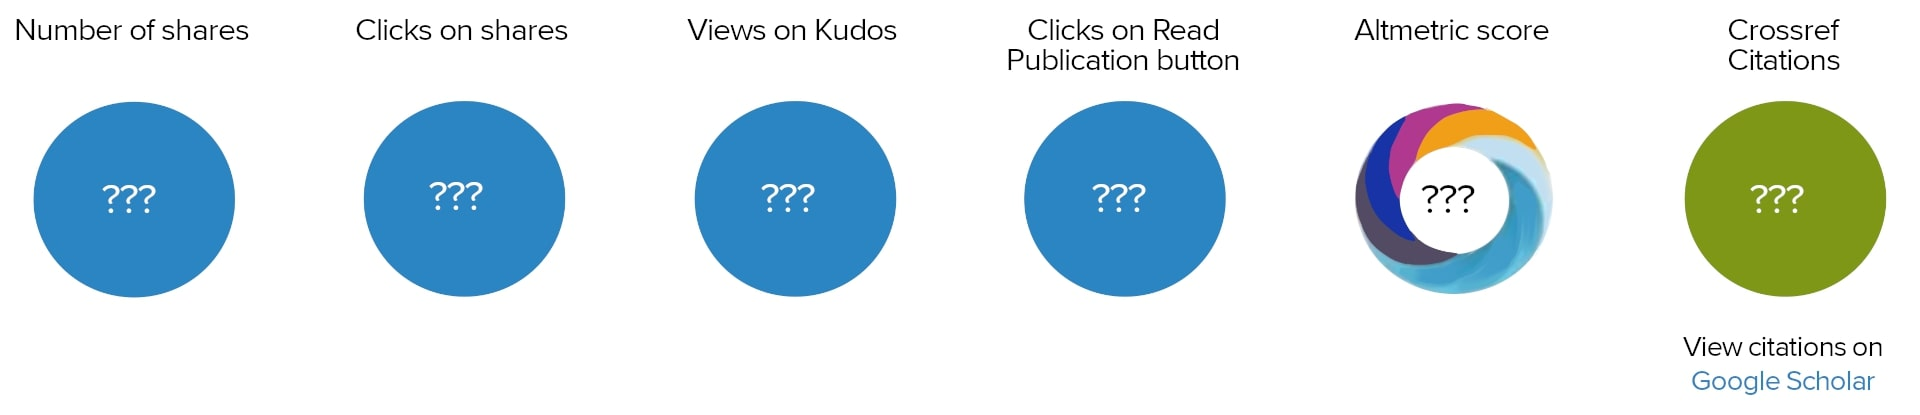 knowledge E about kudos